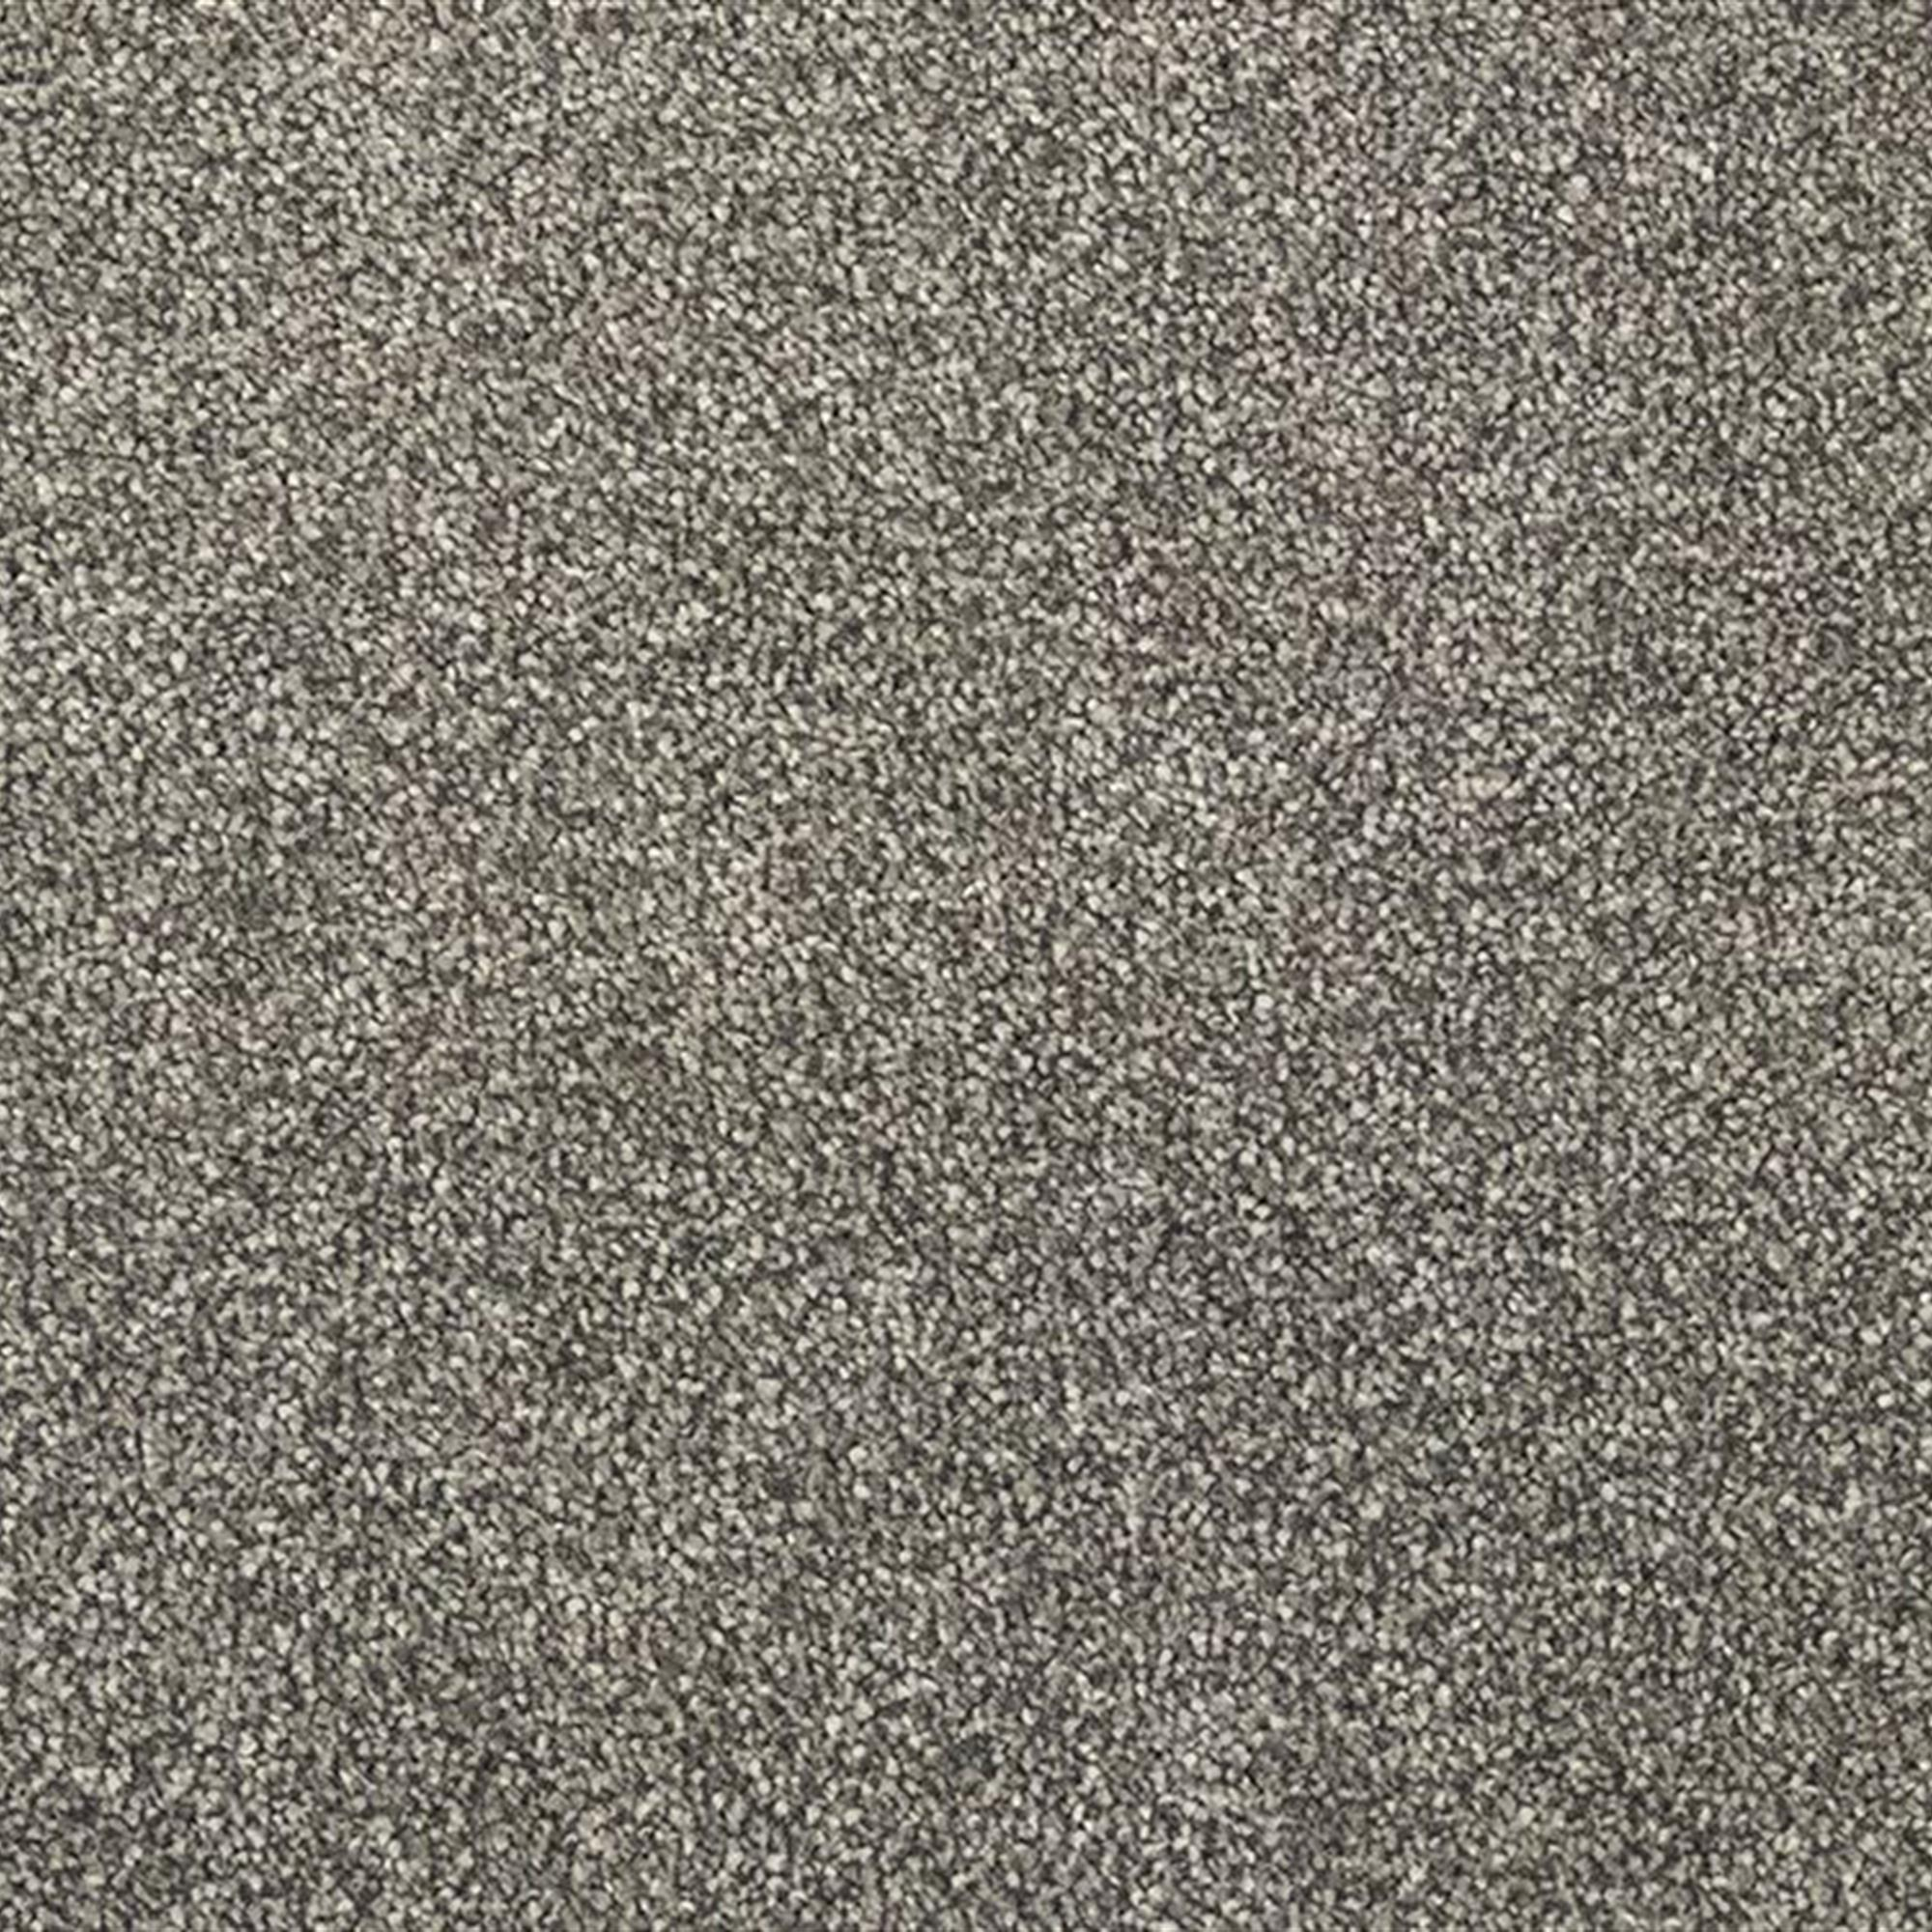 Signature Amore Carpet, 306 Silver, swatch